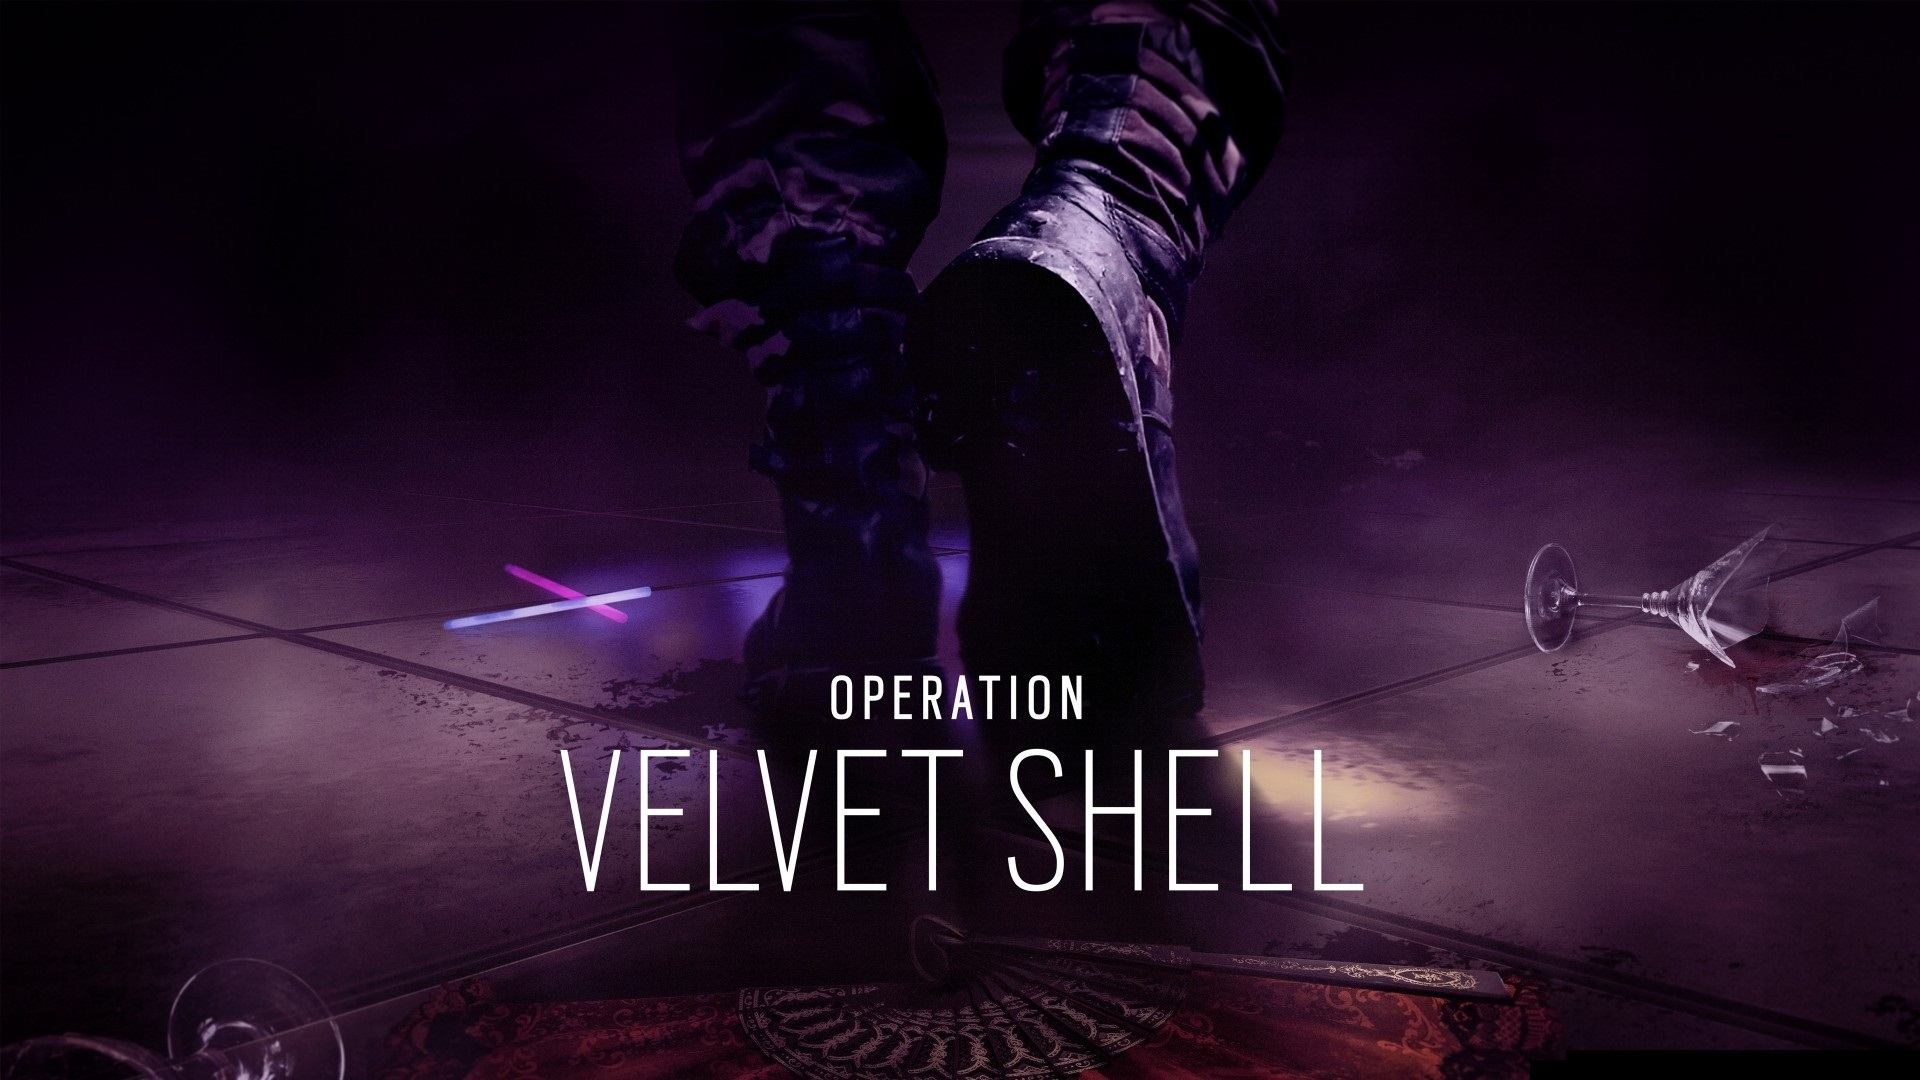 Operation Velvet Shell Fondo De Pantalla Hd Fondo De